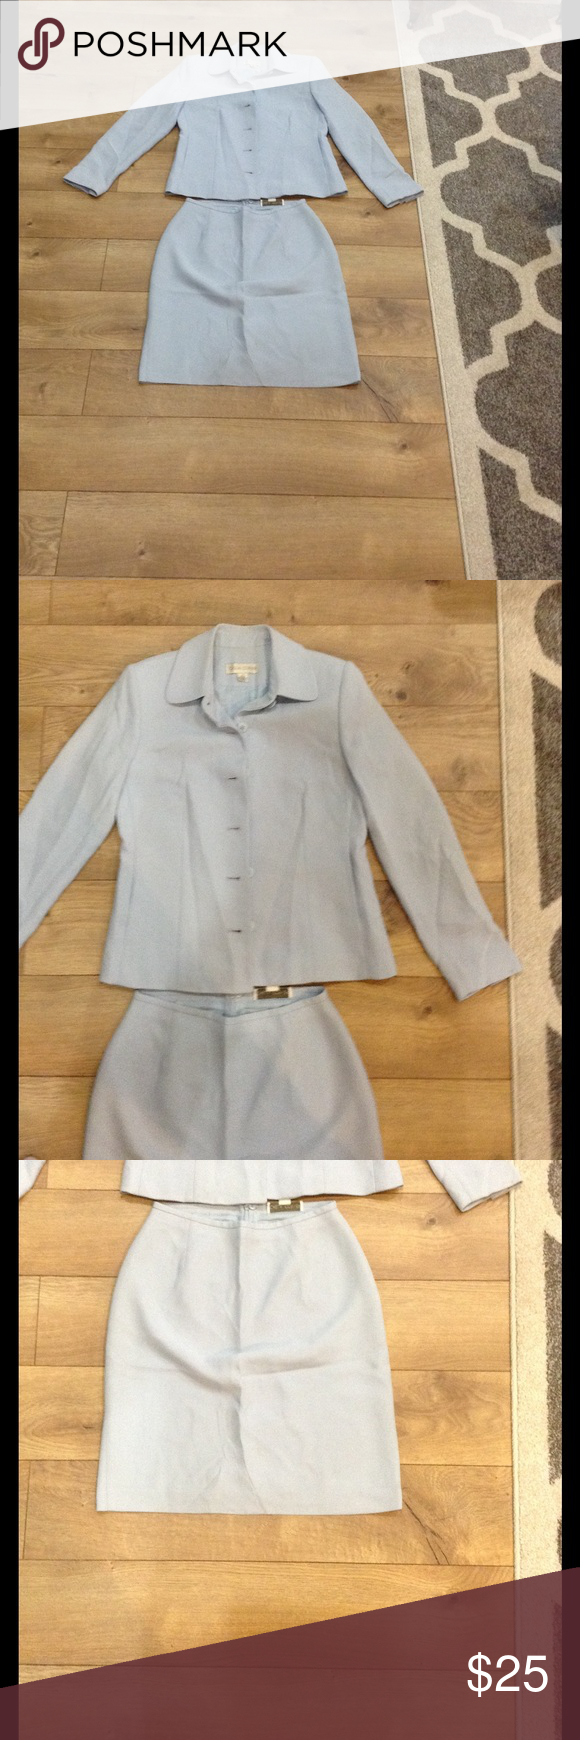 Casual corner light blue suit Casual corner light blue suit. Size 4. A few stains all which are pictured shown in pics 4 and 5. Very nice for an event or work. casual corner Other